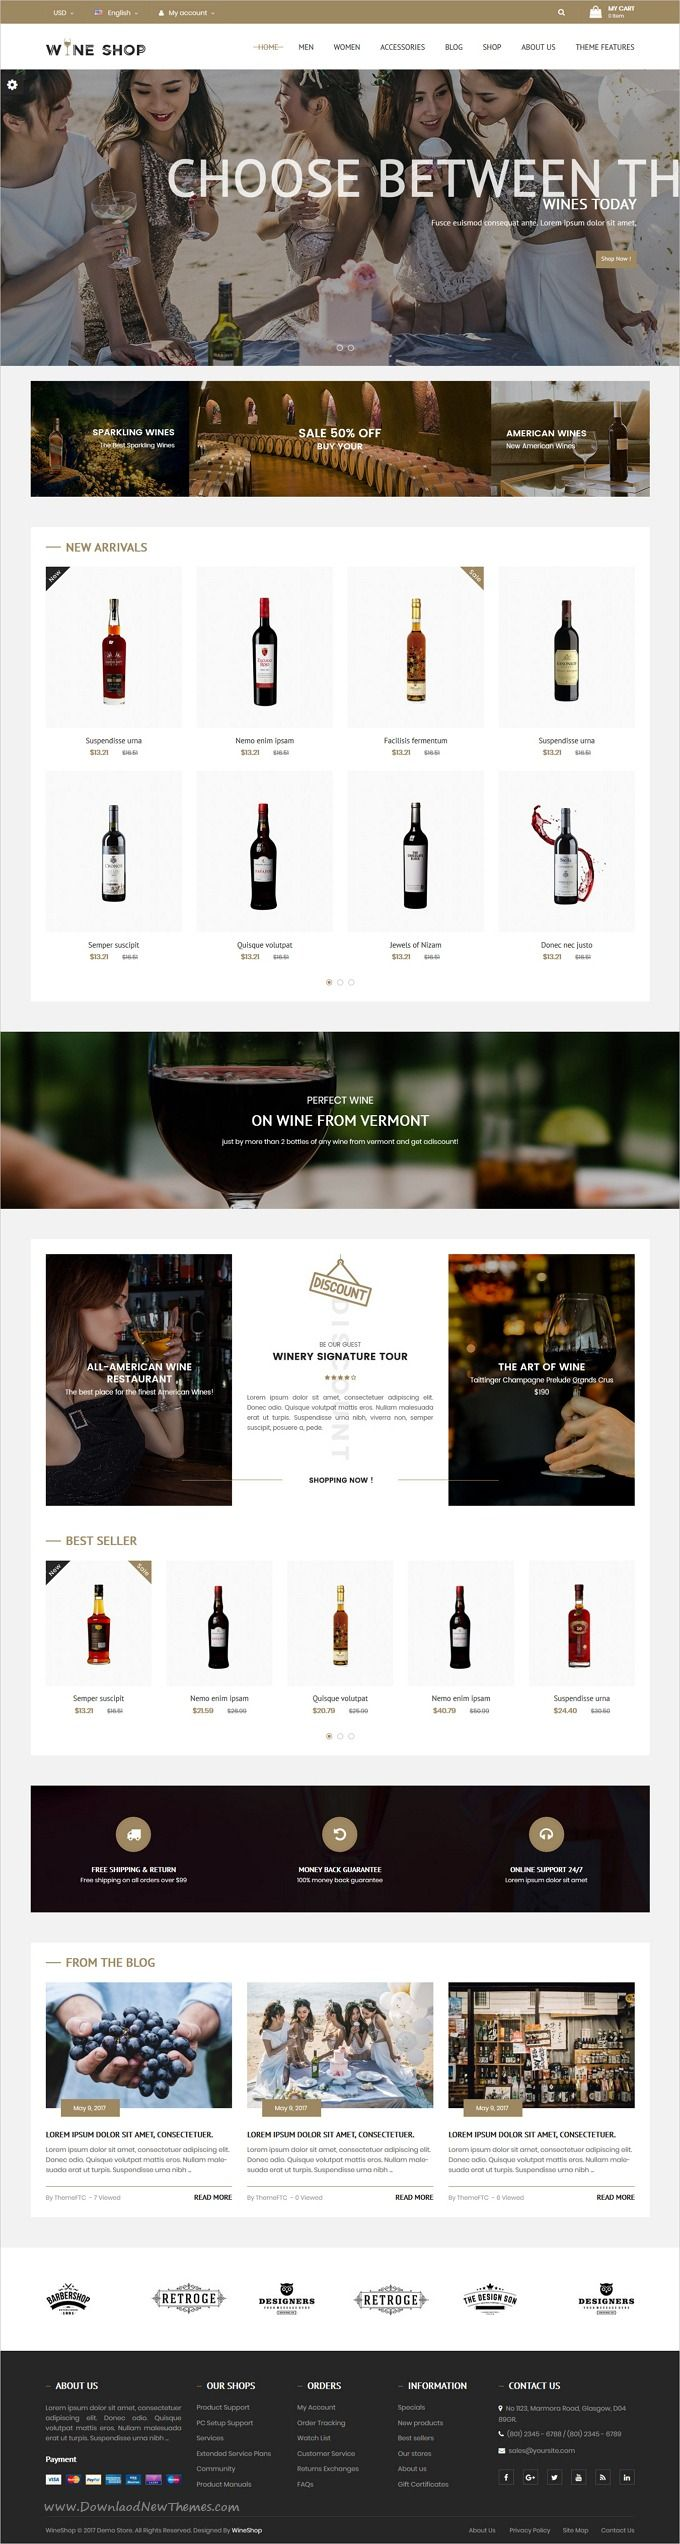 Wine Shop is clean and modern design 4in1 responsive #Prestashop theme for stunning #winery and #liquor shop #eCommerce website download now..